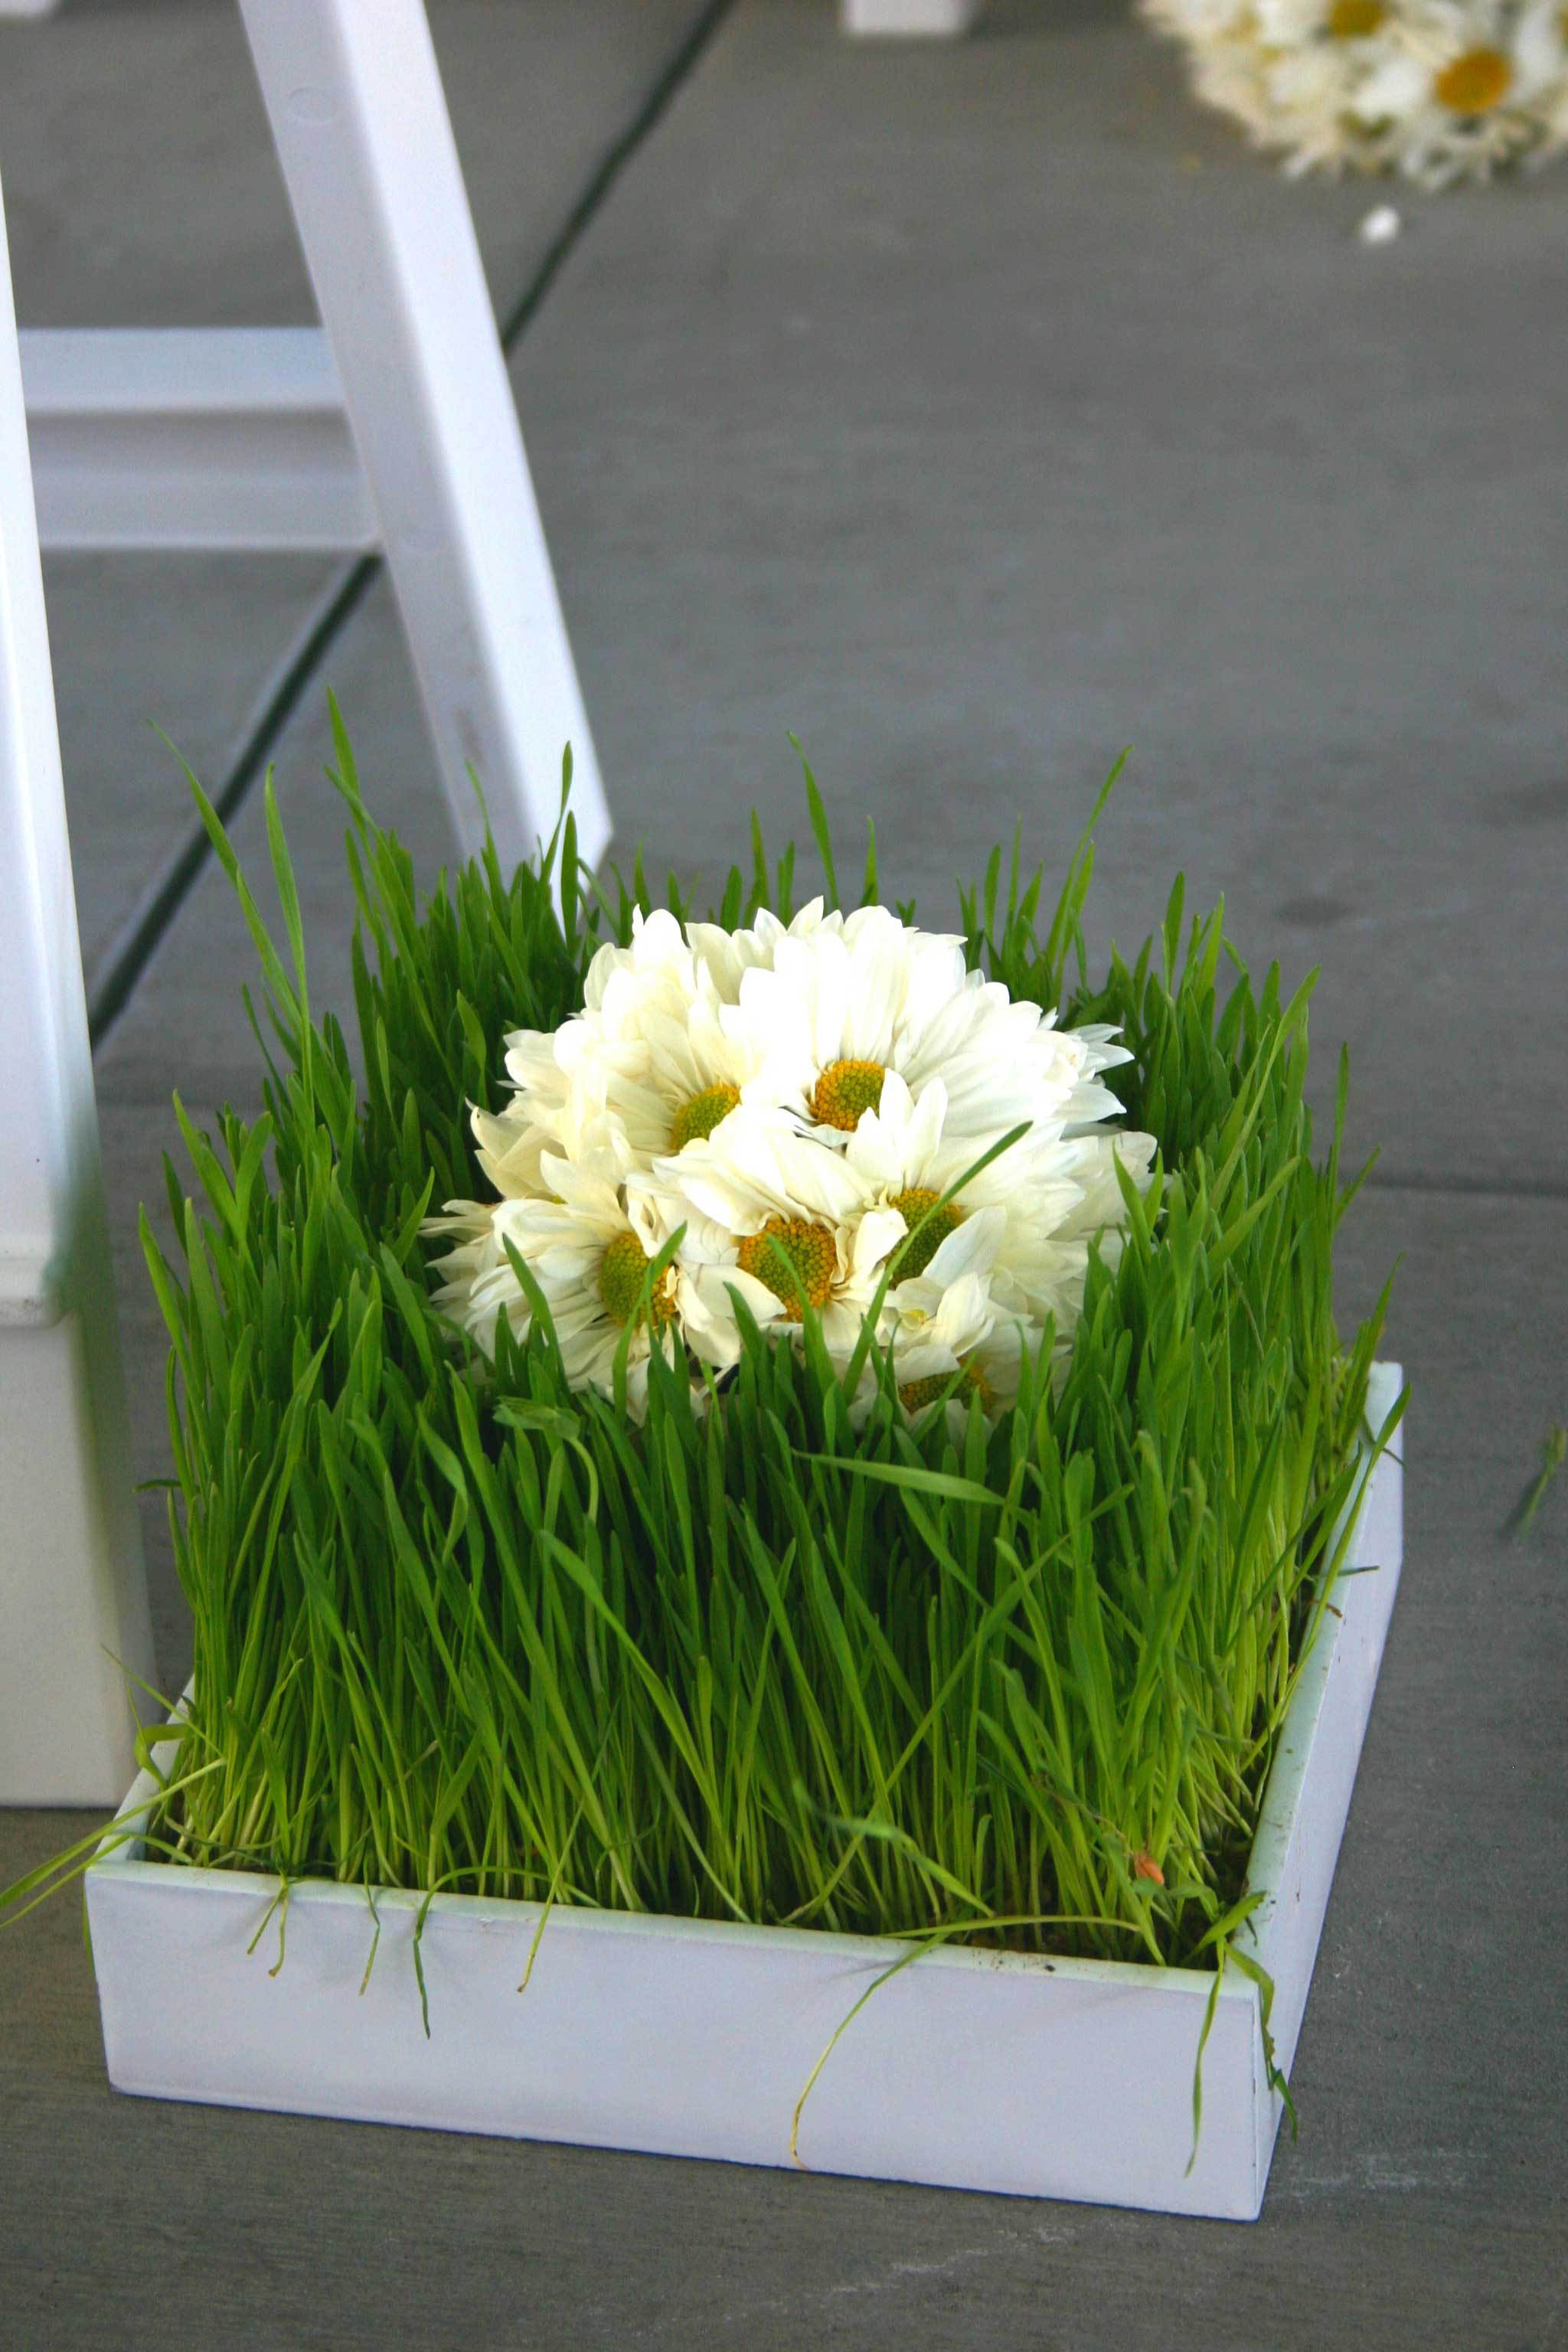 Flowers & Decor, white, green, Ceremony Flowers, Aisle Decor, Modern Wedding Flowers & Decor, Spring Wedding Flowers & Decor